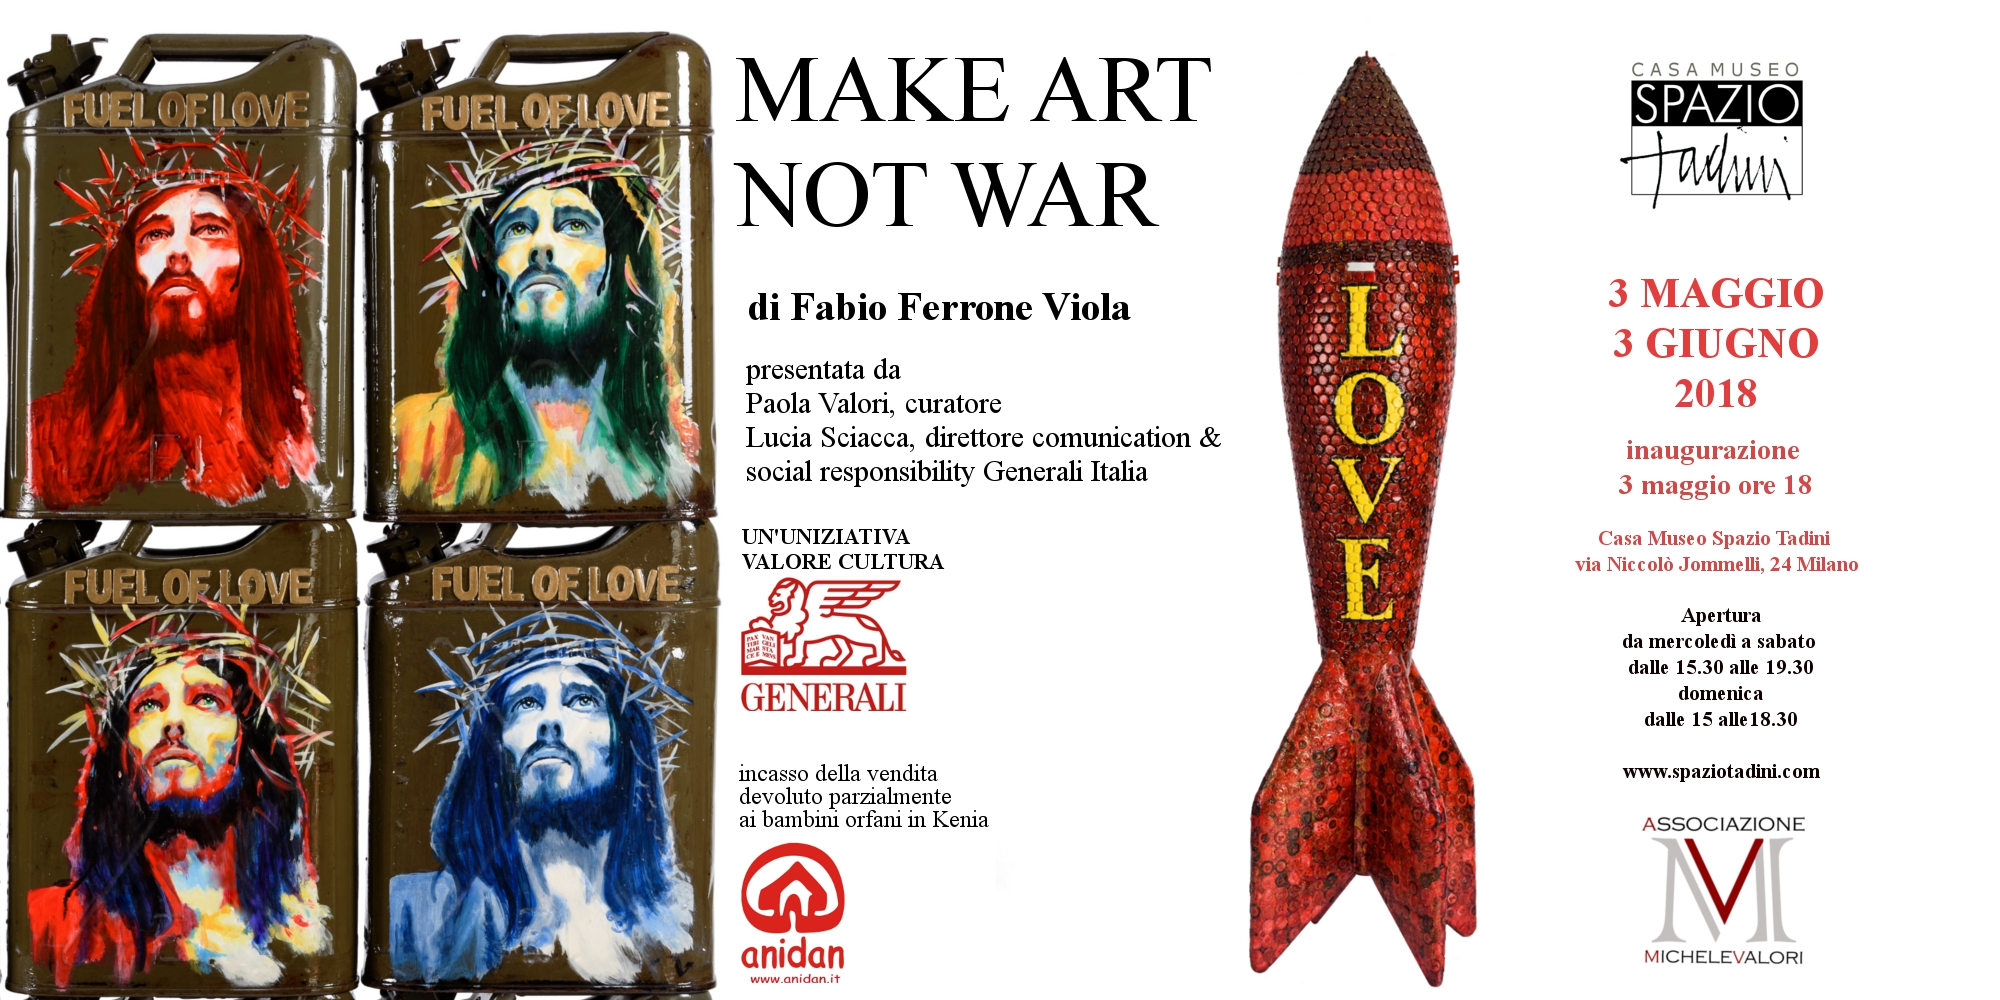 Make art not war : Fabio Ferrone Viola